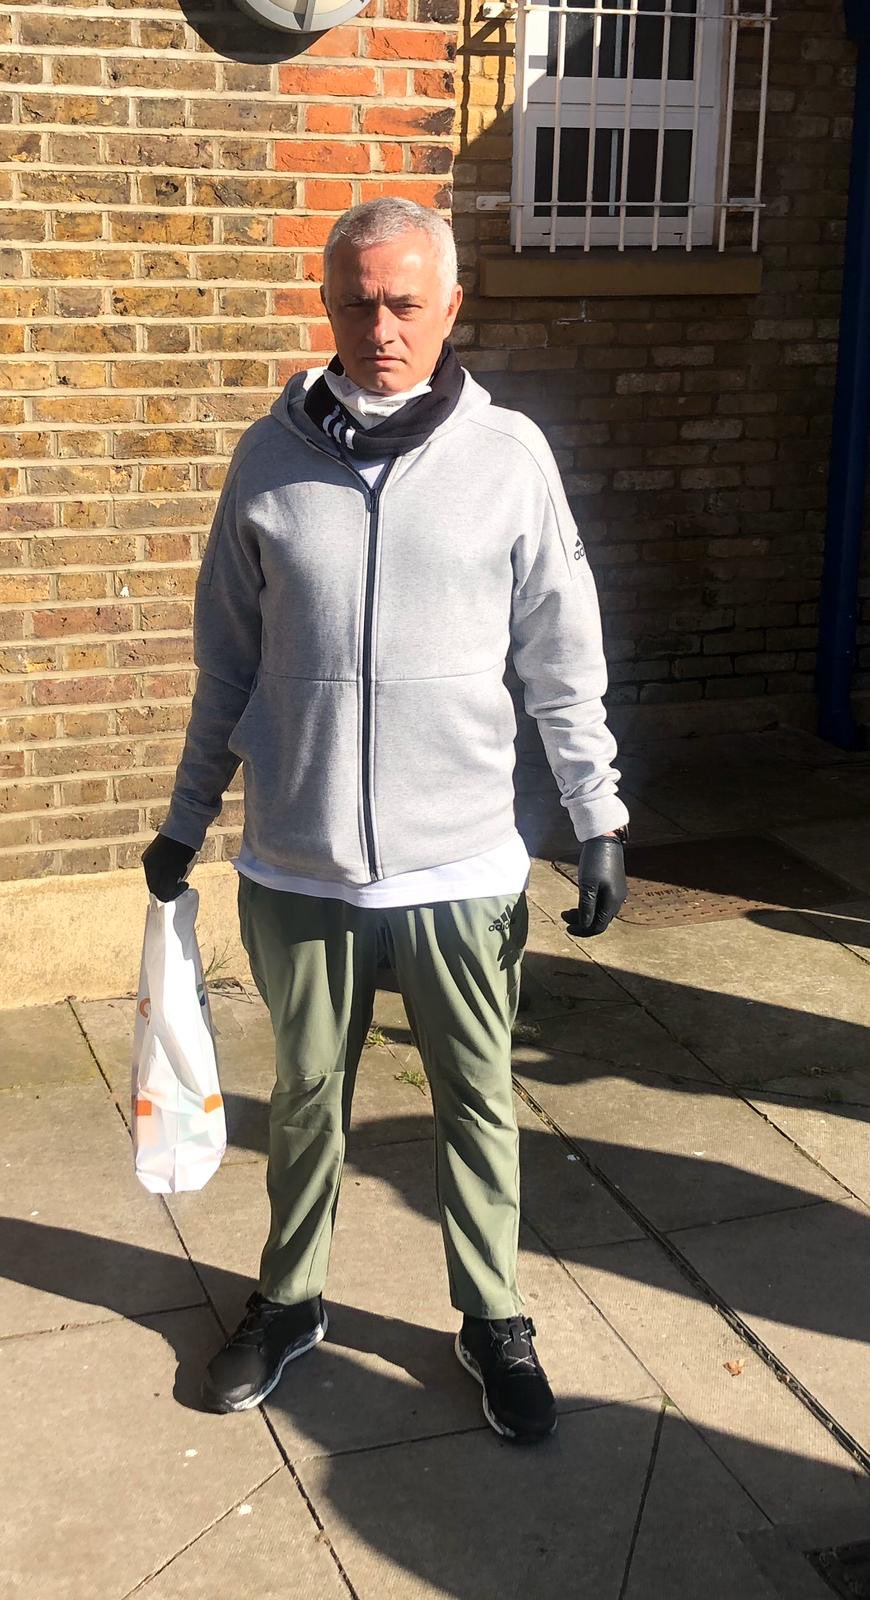 Jose Mourinho was seen helping the vulnerable in London